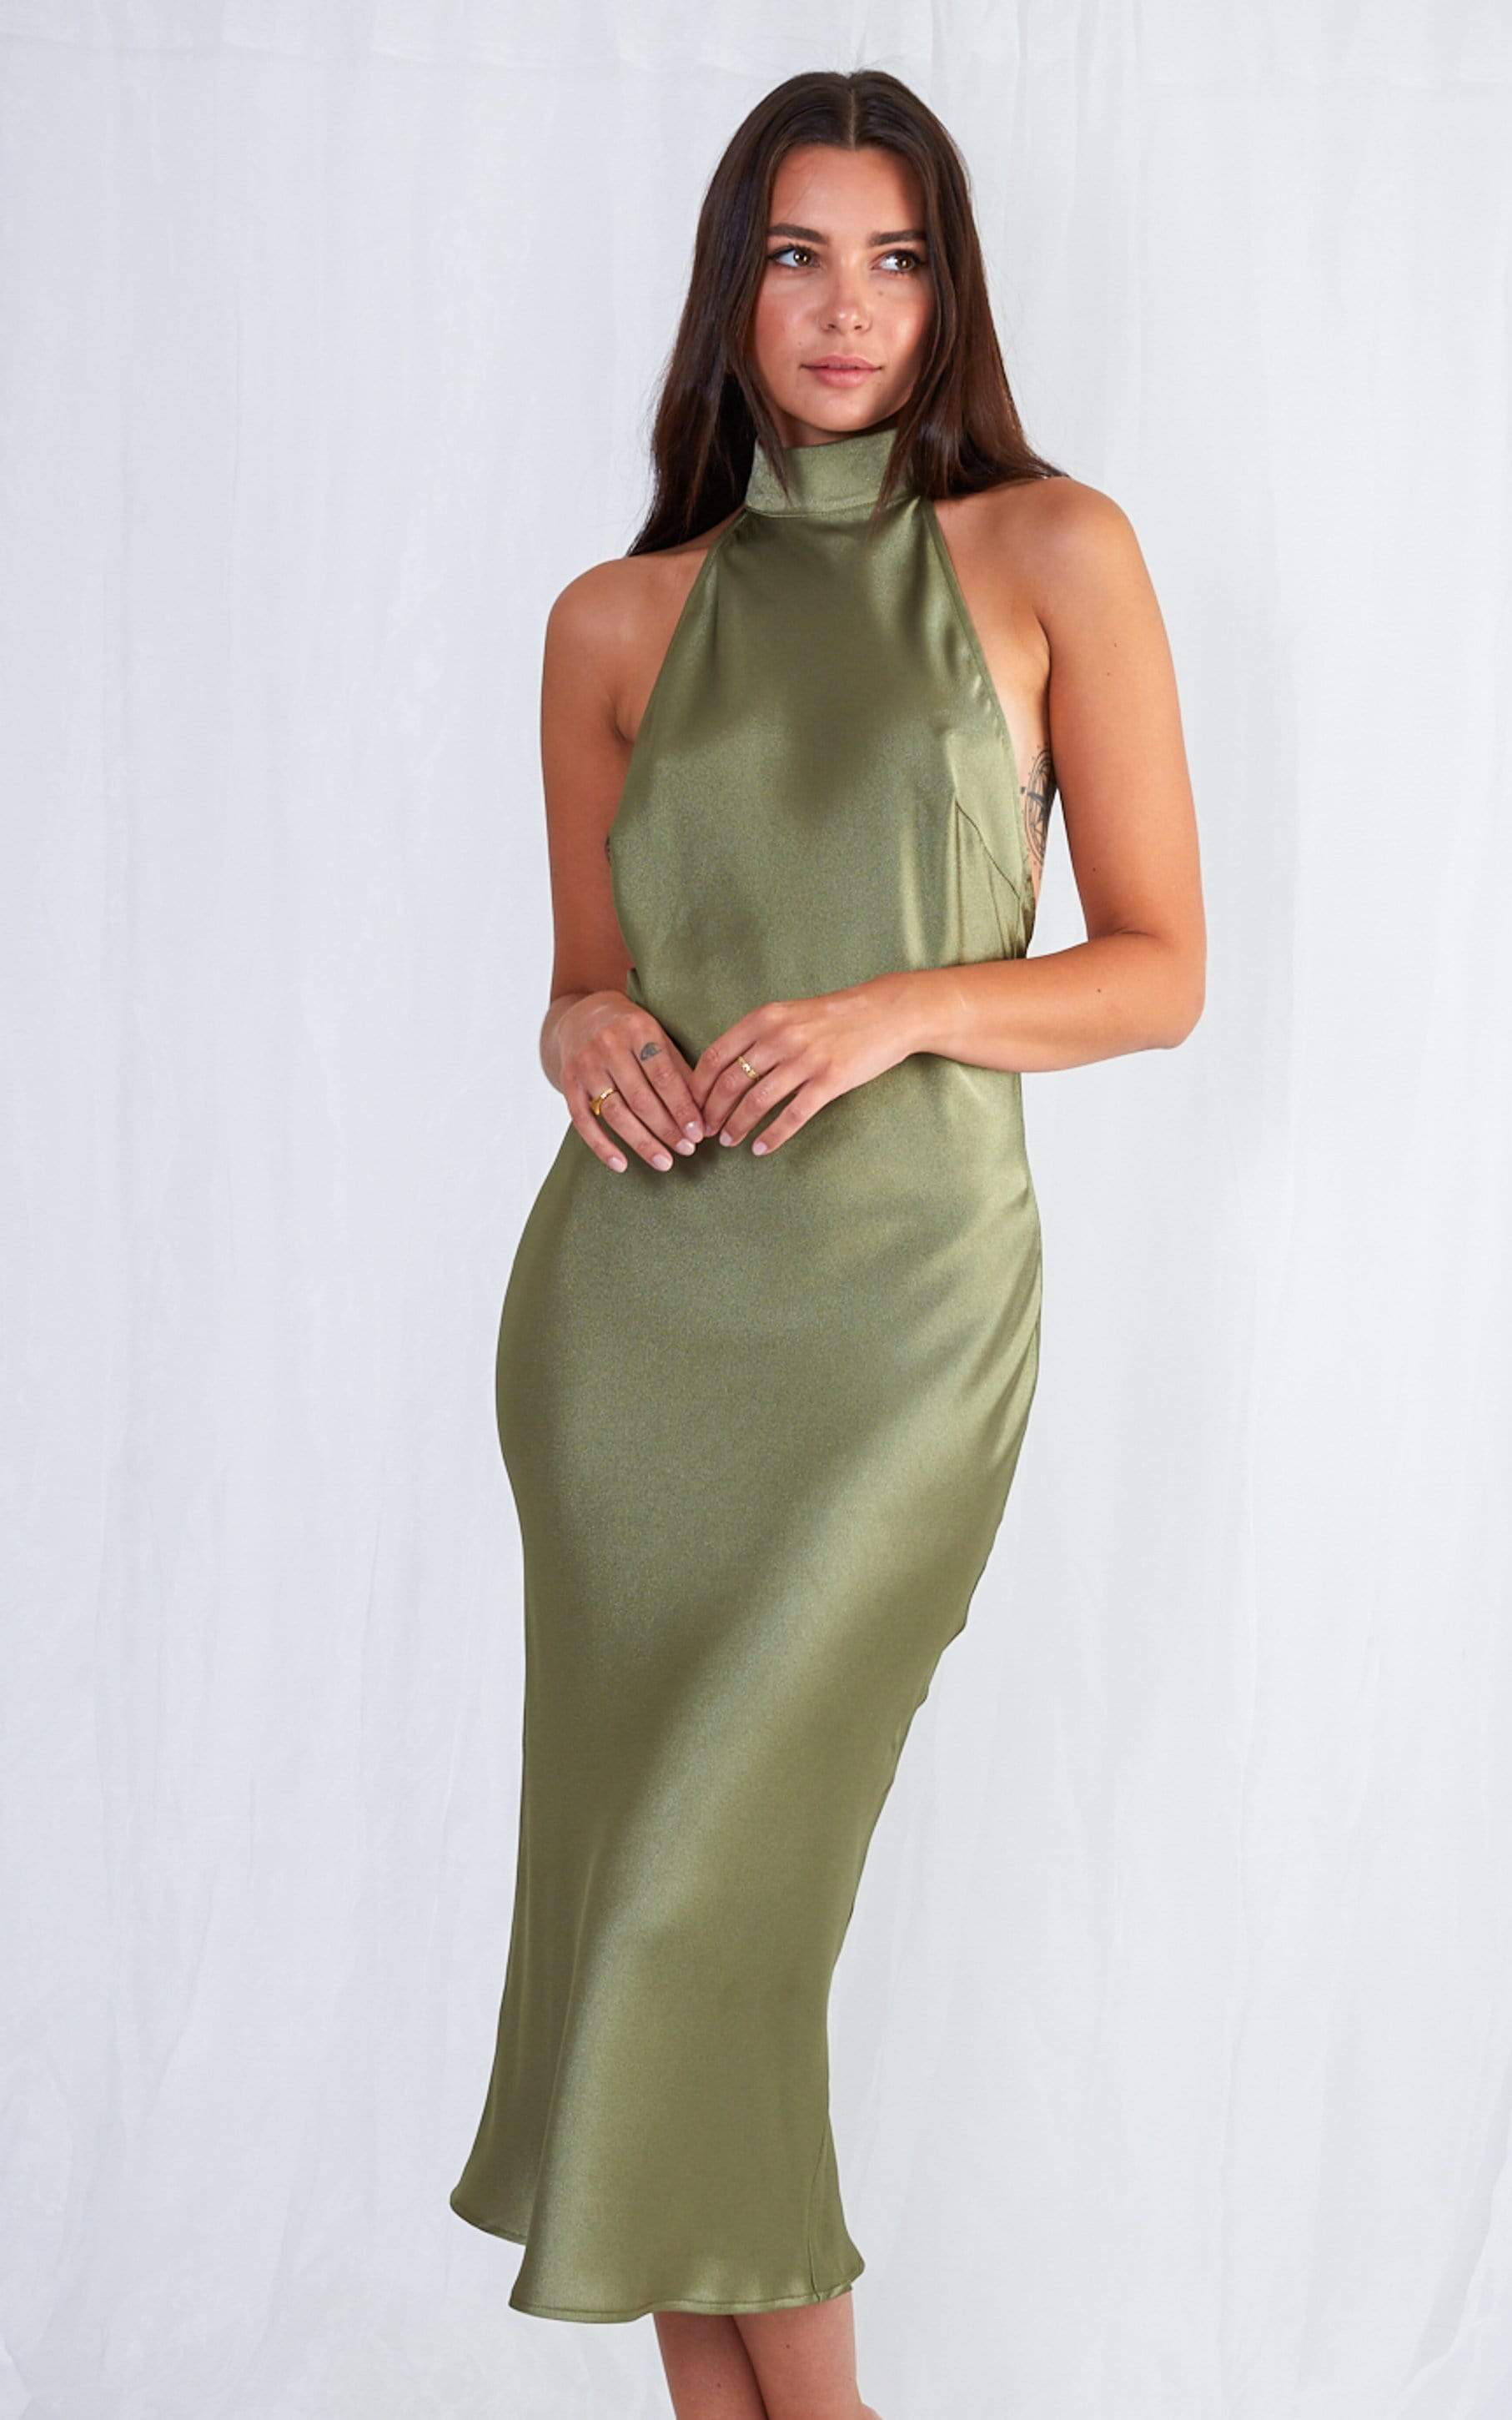 Raleigh Halterneck Dress - Olive Green, Dress - Pretty Lavish